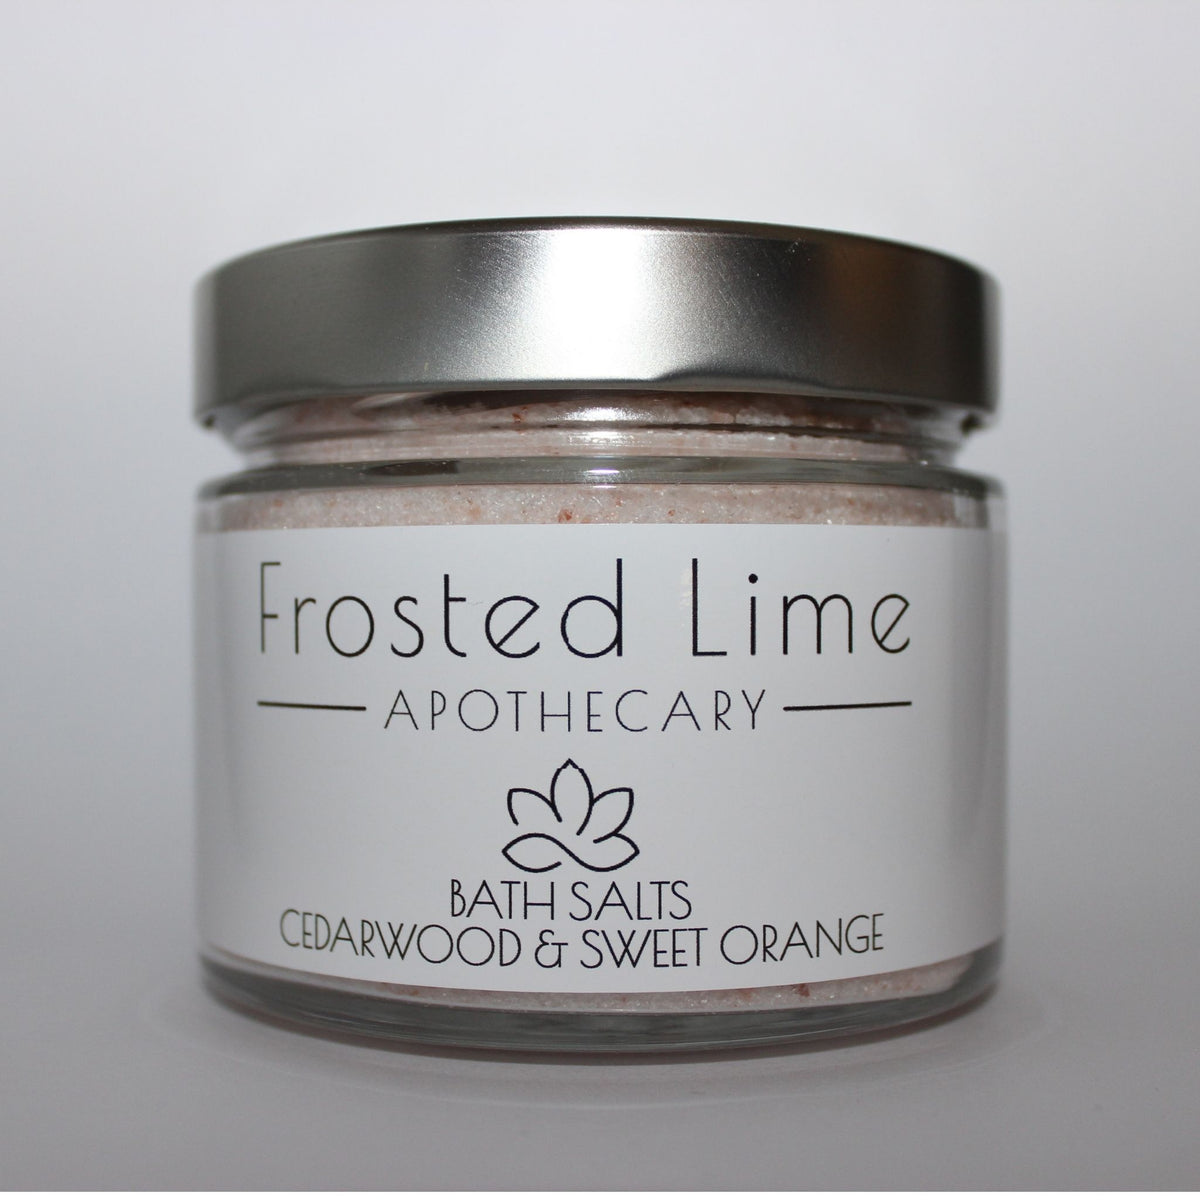 Frosted Lime Apothecary – Bath Salts (assorted)